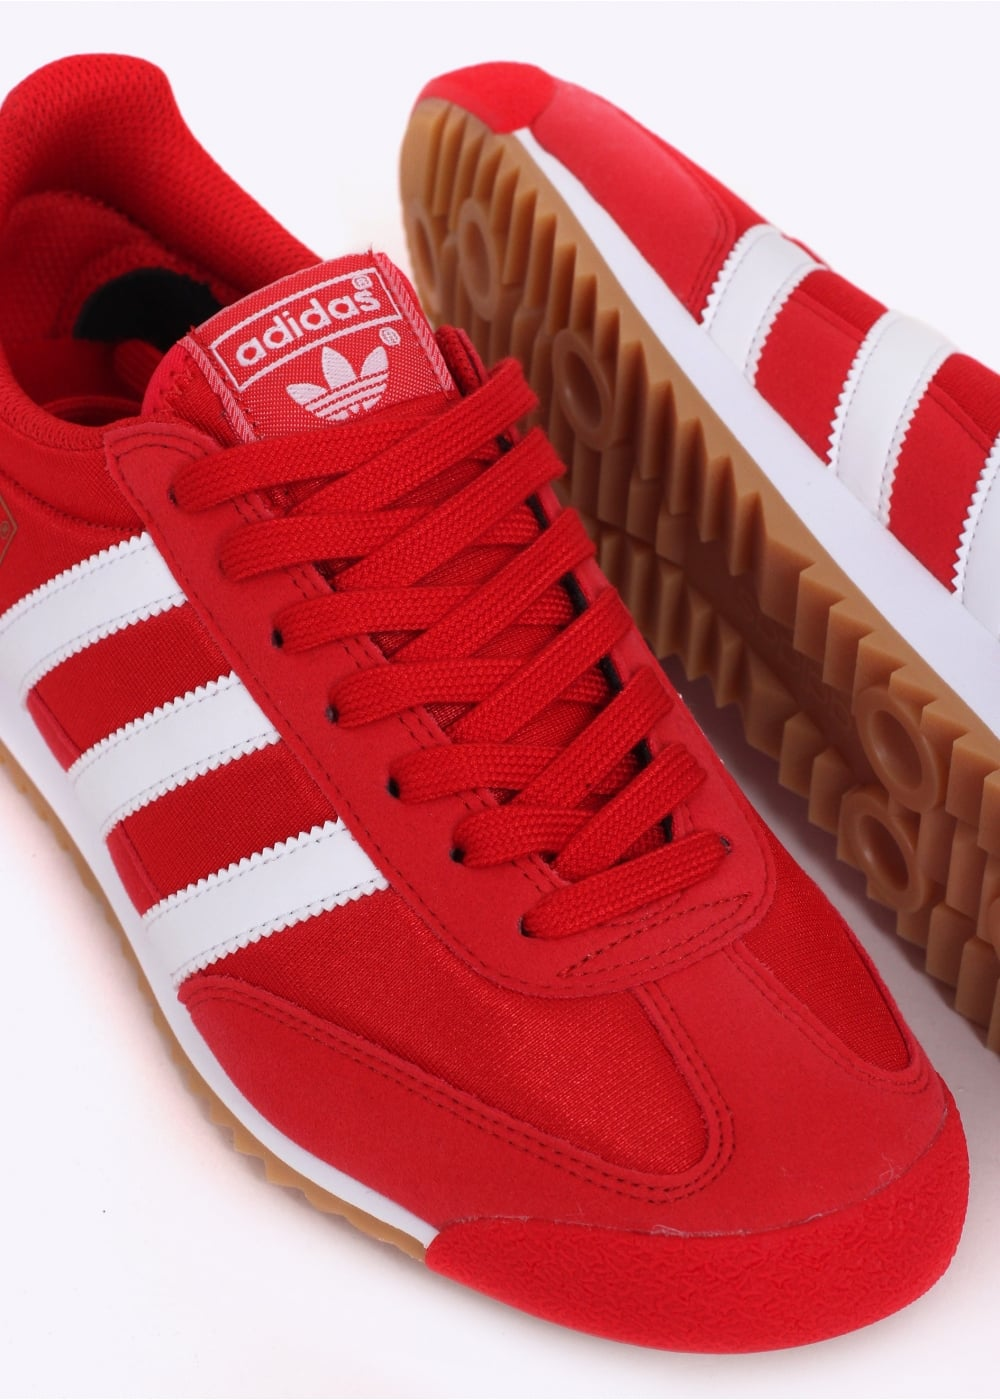 red adidas dragons